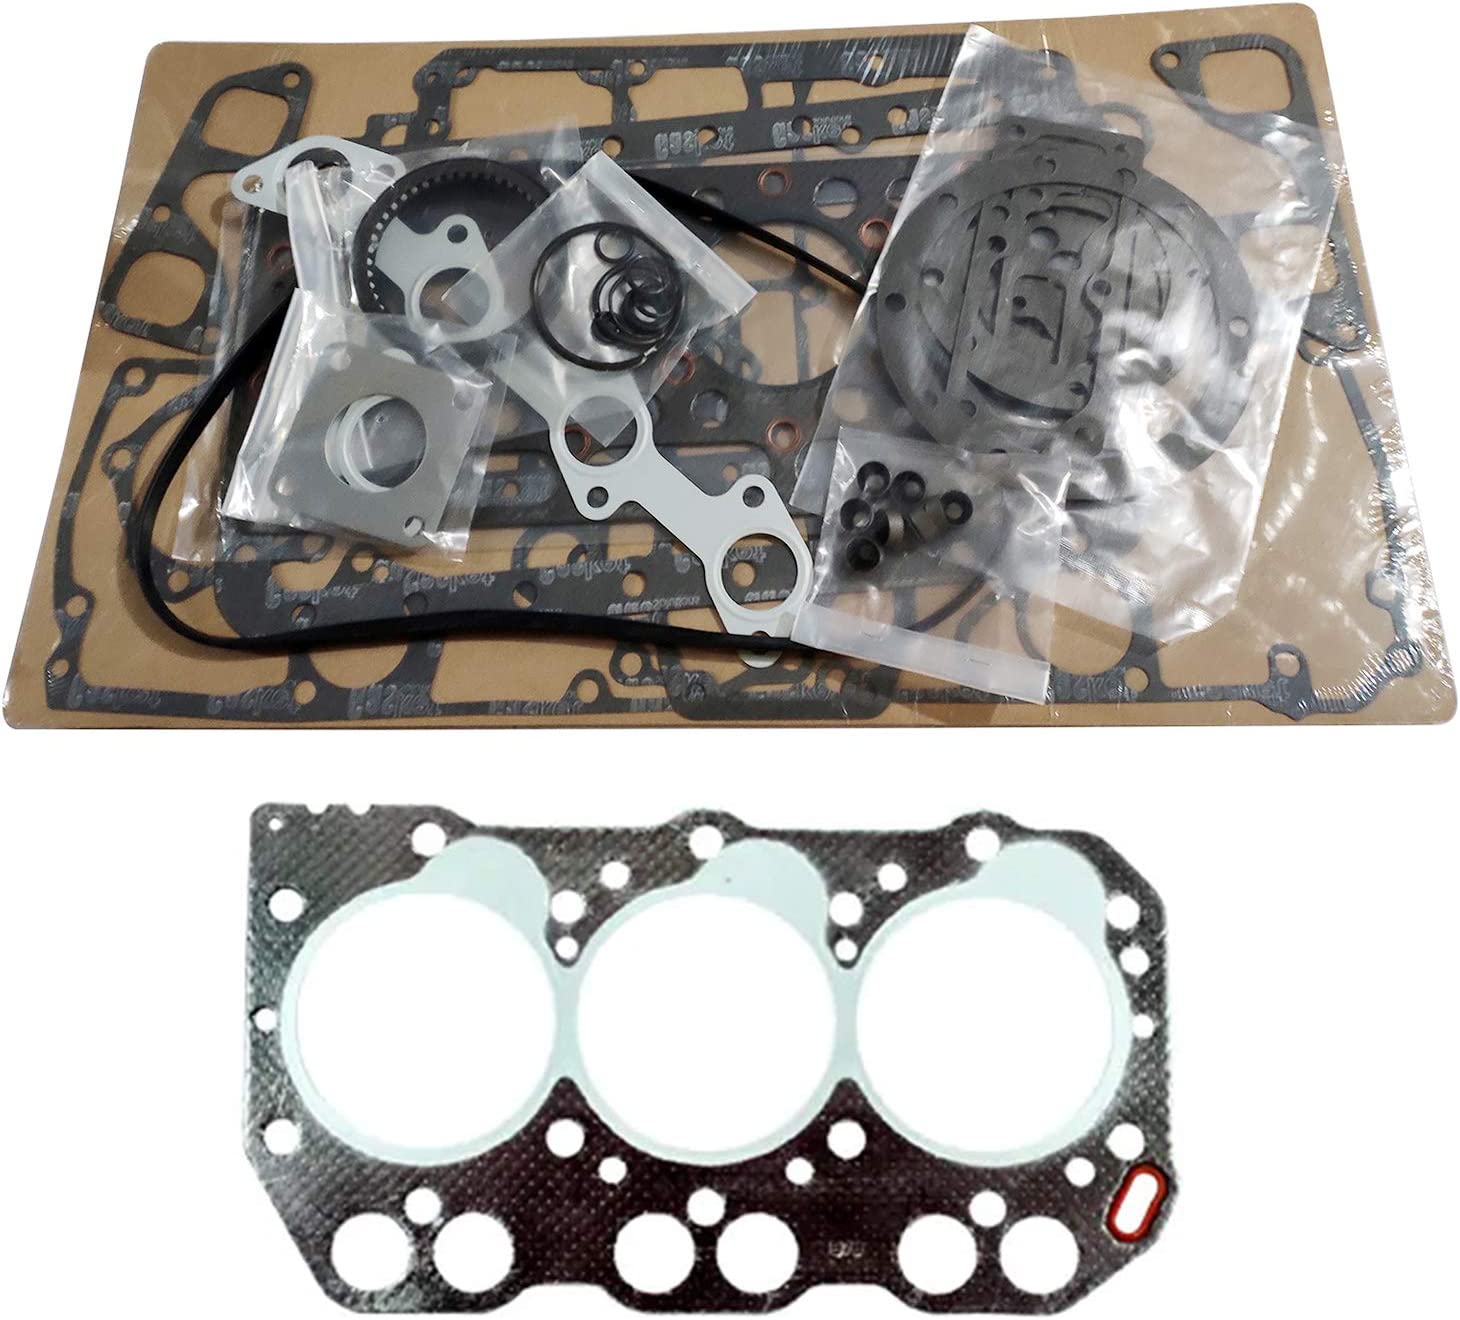 Limited time cheap sale KRRK-parts 3TNA72 Full Gasket Set fits Los Angeles Mall w for Yanmar Head